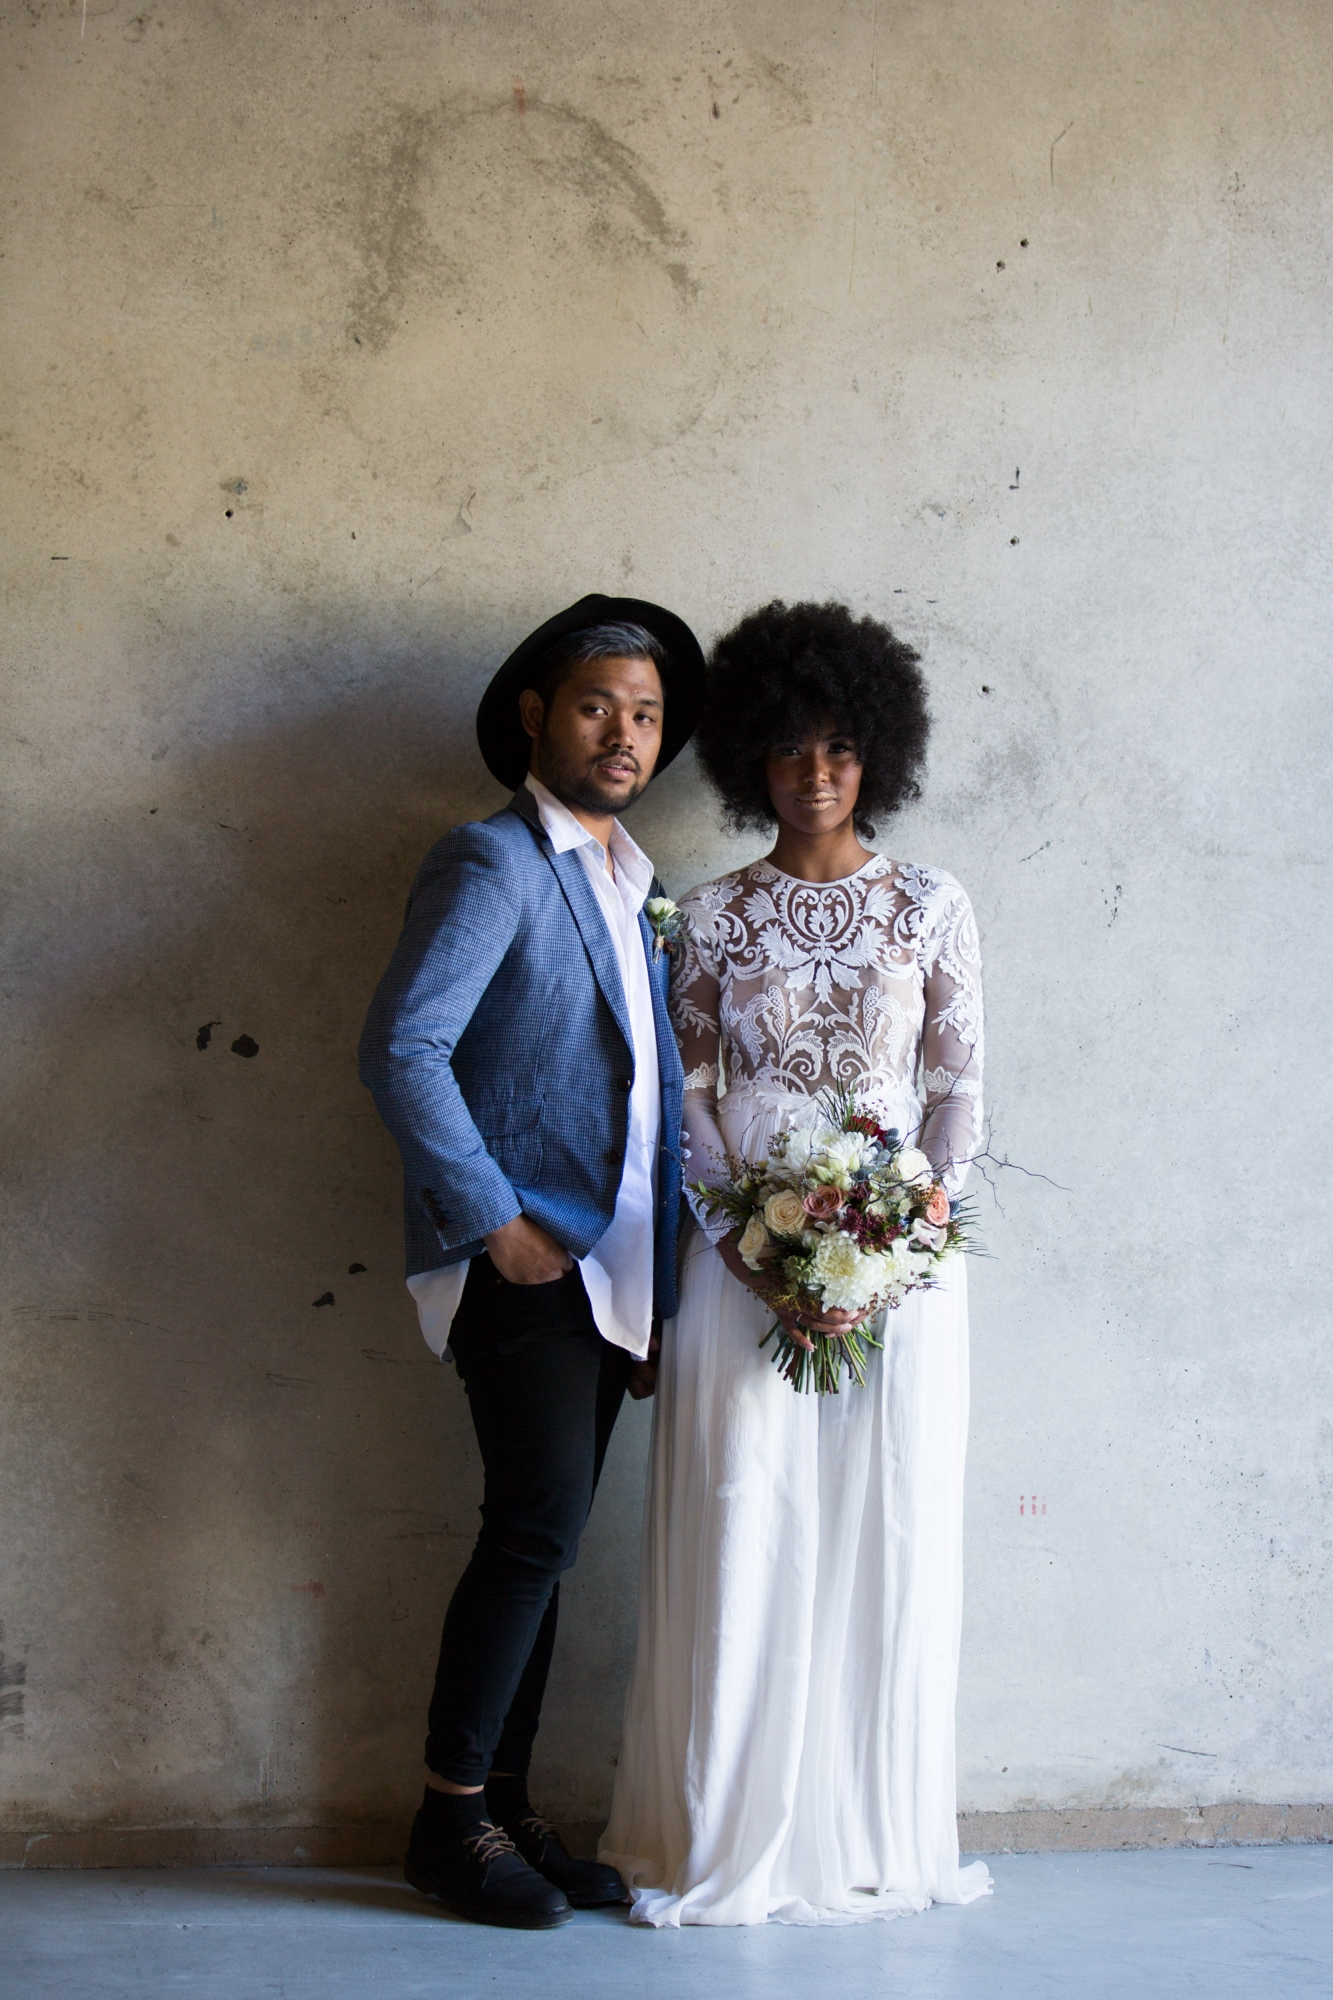 Cool bride and groom standing against brick wall